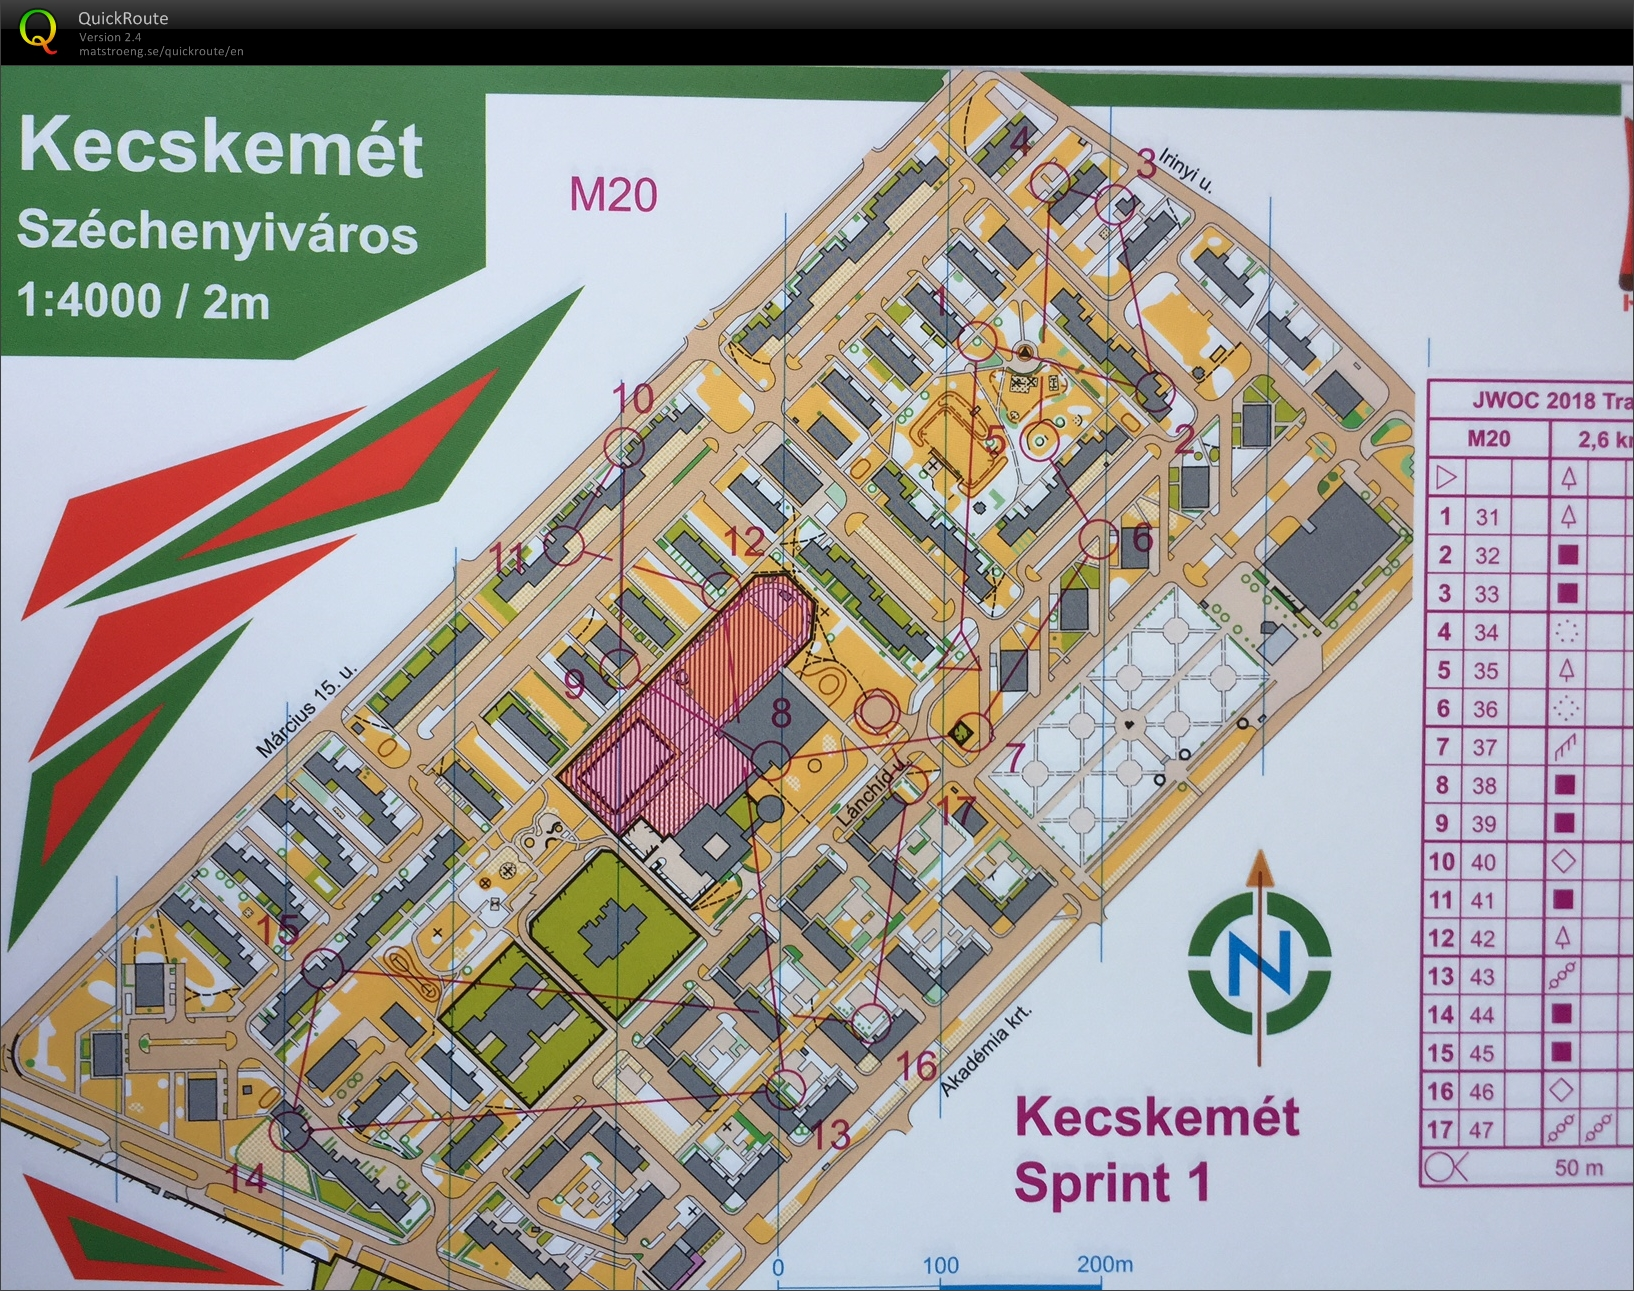 Hungary 2 sprintervals August 14th 2017 Orienteering Map from